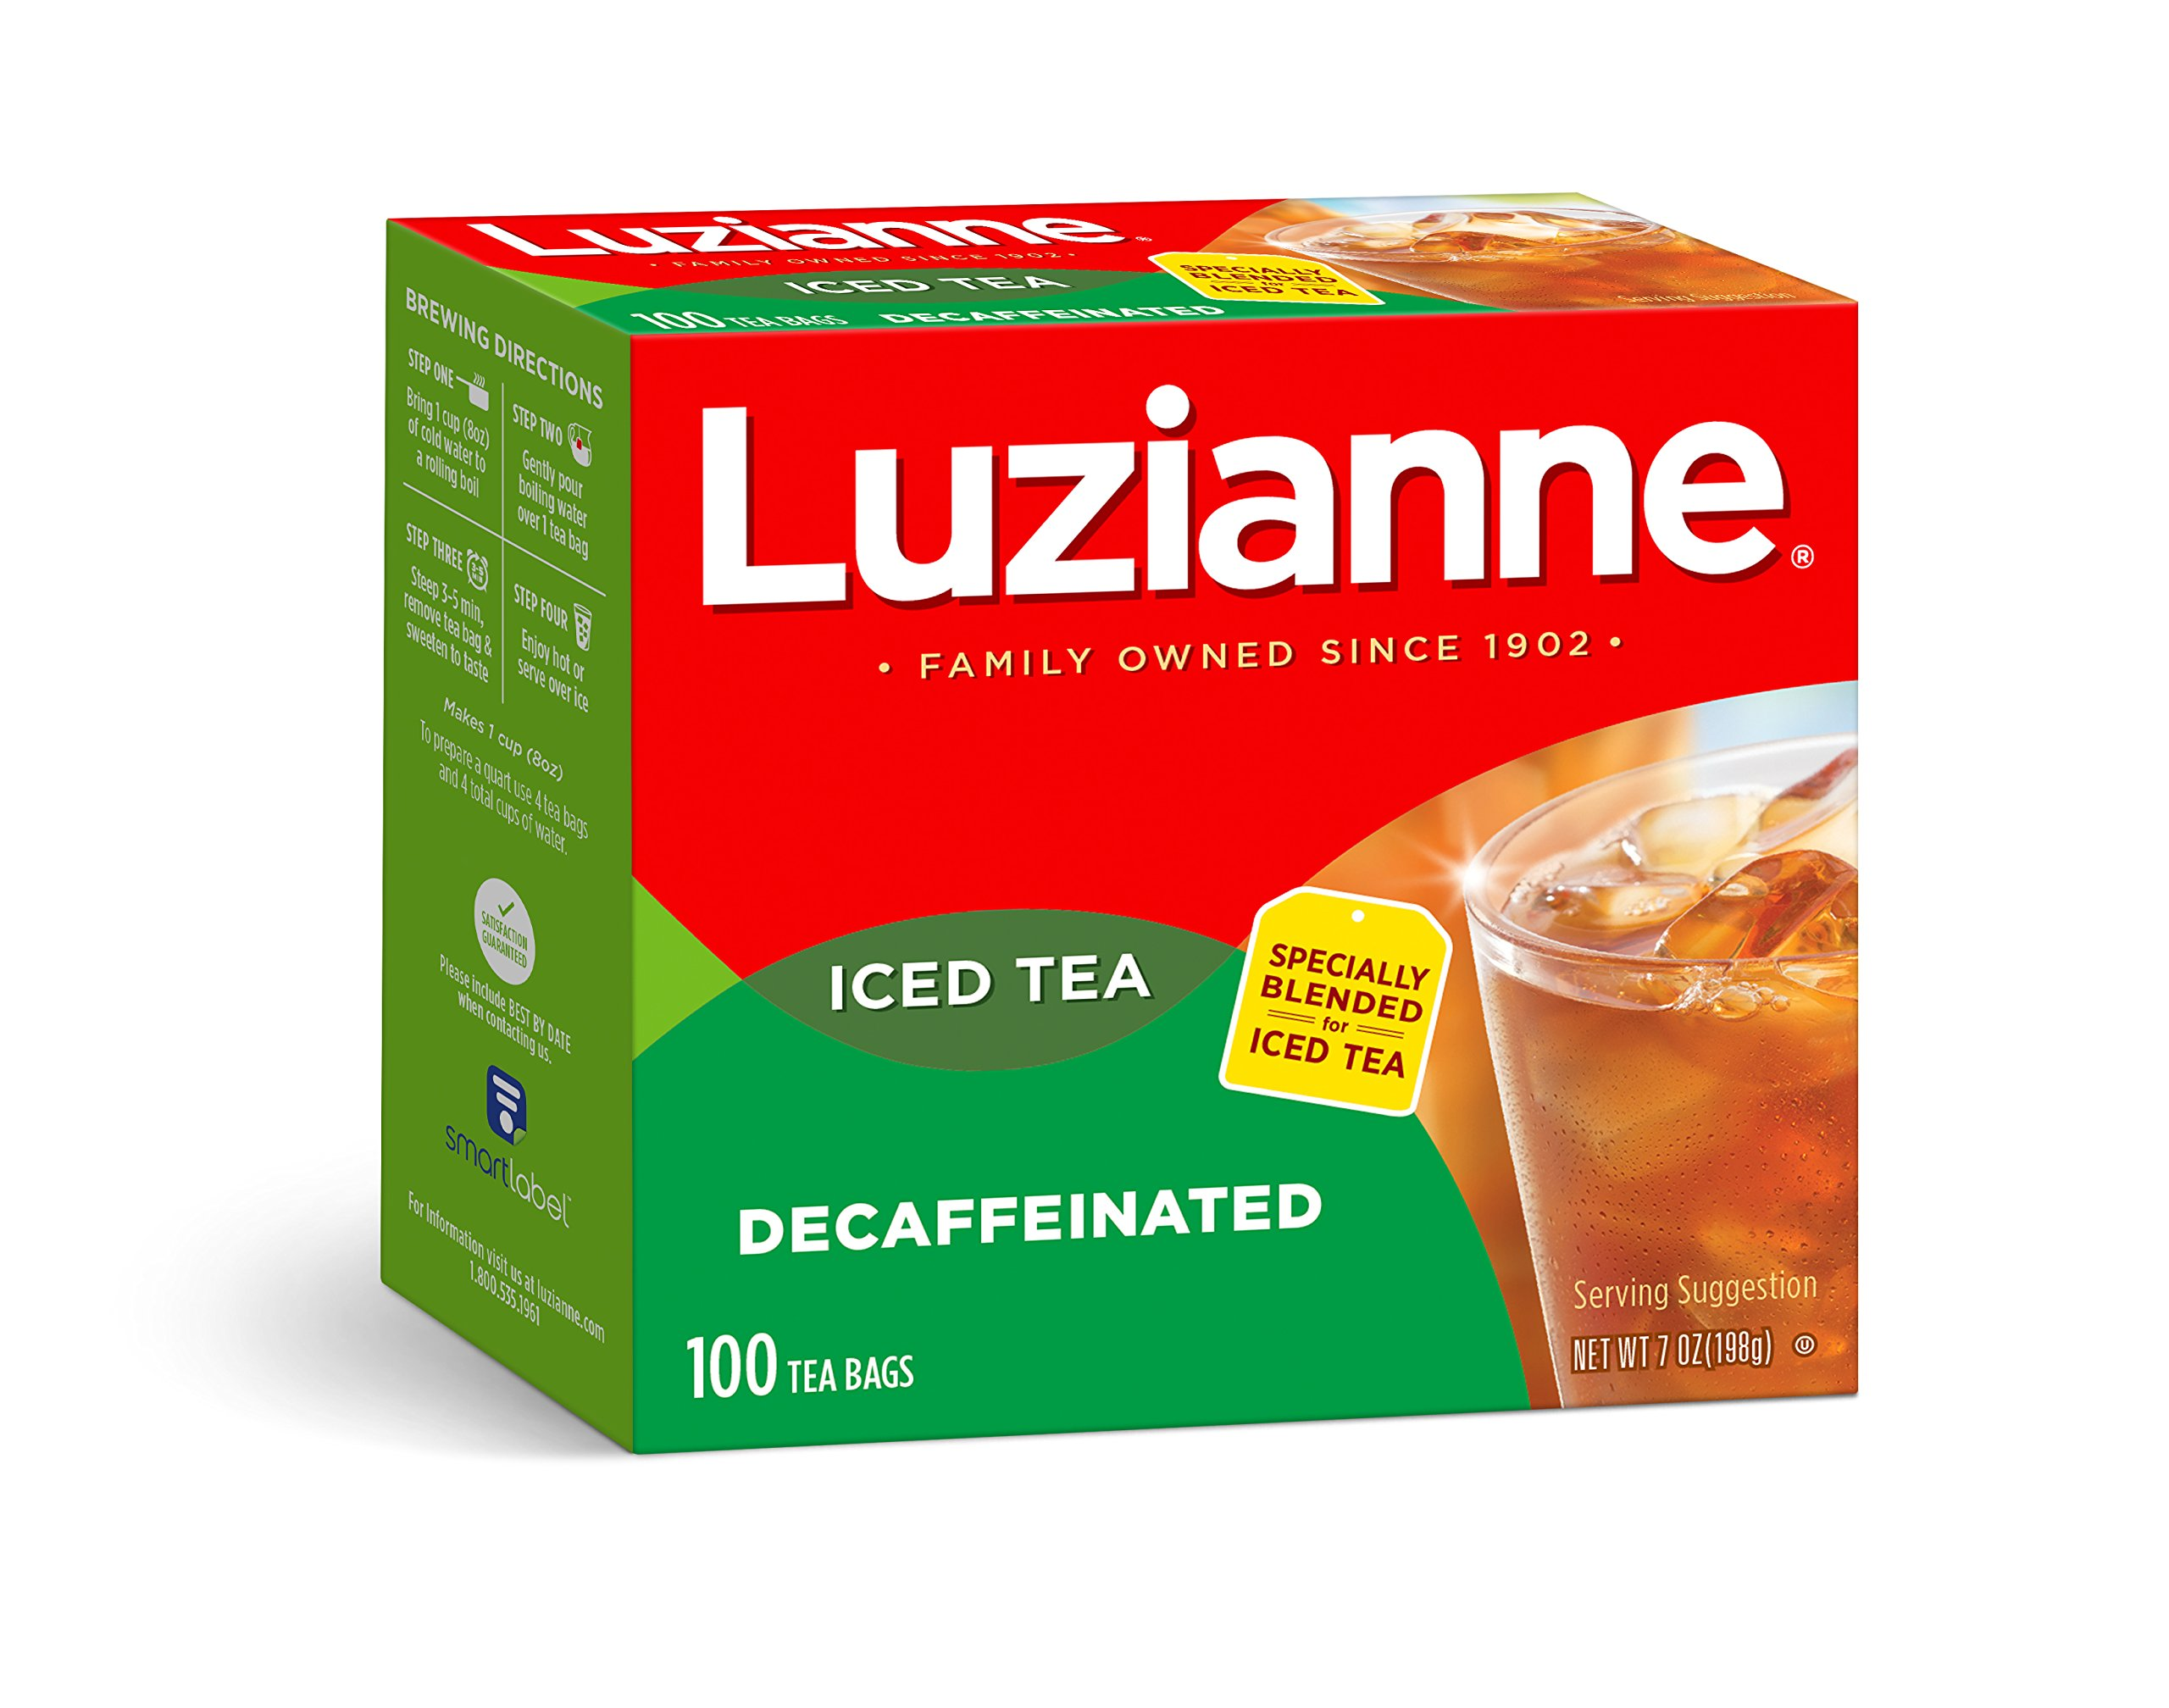 Luzianne Decaffeinated Iced Tea Bags 100 ct. Box (Pack of 4) by Luzianne